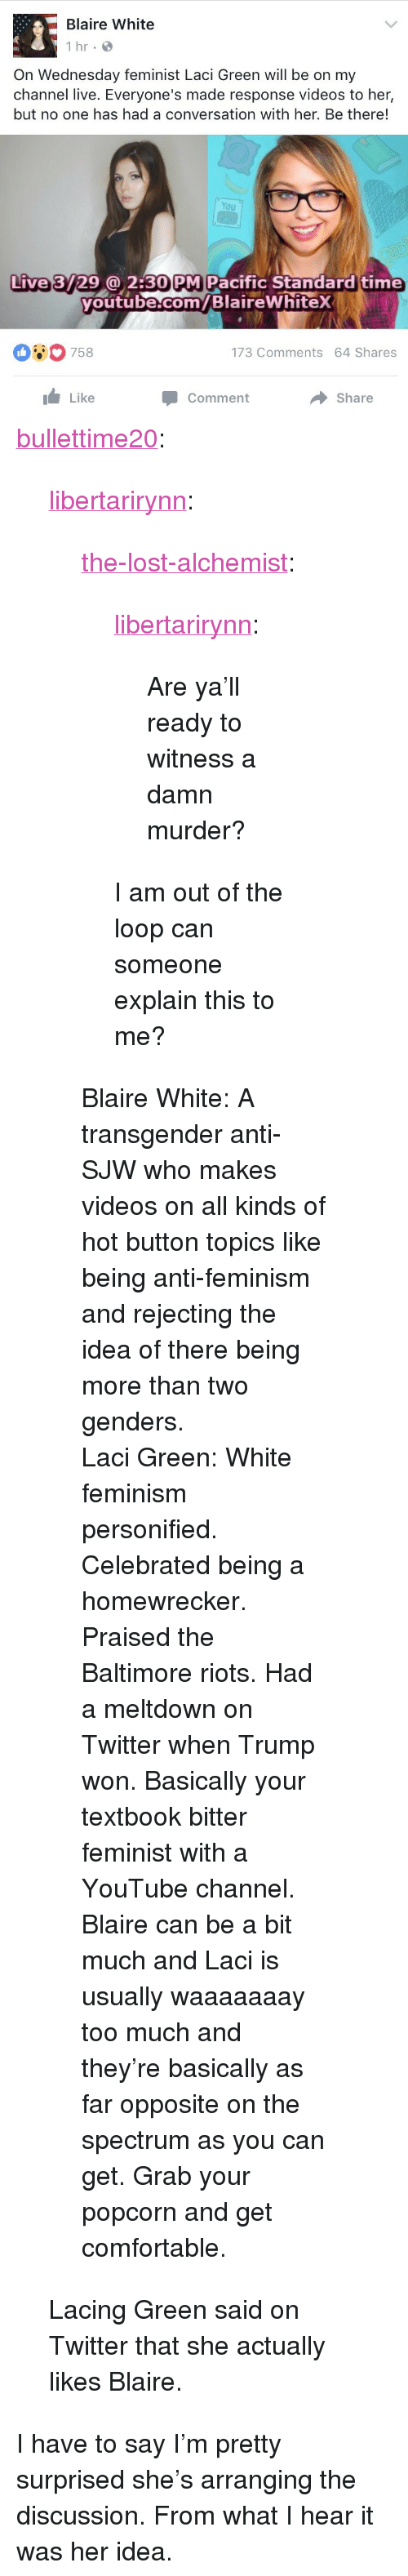 "discussion: Blaire White  1 hr  On Wednesday feminist Laci Green will be on my  channel live. Everyone's made response videos to her,  but no one has had a conversation with her. Be there!  You  Live 3729@ 2:30 PM Pacific Standard time  youtube.com/BlaireWhitex  outube com  00758  173 Comments 64 Shares  Like  Share  Comment <p><a href=""http://bullettime20.tumblr.com/post/158906449393/the-lost-alchemist-libertarirynn-are-yall"" class=""tumblr_blog"">bullettime20</a>:</p>  <blockquote><p><a href=""https://libertarirynn.tumblr.com/post/158905591739/the-lost-alchemist-libertarirynn-are-yall"" class=""tumblr_blog"">libertarirynn</a>:</p>  <blockquote><p><a href=""https://the-lost-alchemist.tumblr.com/post/158905360116/are-yall-ready-to-witness-a-damn-murder"" class=""tumblr_blog"">the-lost-alchemist</a>:</p><blockquote> <p><a href=""https://libertarirynn.tumblr.com/post/158903934169/are-yall-ready-to-witness-a-damn-murder"" class=""tumblr_blog"">libertarirynn</a>:</p>  <blockquote><p>Are ya'll ready to witness a damn murder?</p></blockquote>  <p>I am out of the loop can someone explain this to me?</p> </blockquote> <p>Blaire White: A transgender anti-SJW who makes videos on all kinds of hot button topics like being anti-feminism and rejecting the idea of there being more than two genders.</p><p>Laci Green: White feminism personified. Celebrated being a homewrecker. Praised the Baltimore riots. Had a meltdown on Twitter when Trump won. Basically your textbook bitter feminist with a YouTube channel. </p><p>Blaire can be a bit much and Laci is usually waaaaaaay too much and they're basically as far opposite on the spectrum as you can get. Grab your popcorn and get comfortable. </p></blockquote>  <p>Lacing Green said on Twitter that she actually likes Blaire.</p></blockquote>  <p>I have to say I&rsquo;m pretty surprised she&rsquo;s arranging the discussion. From what I hear it was her idea.</p>"